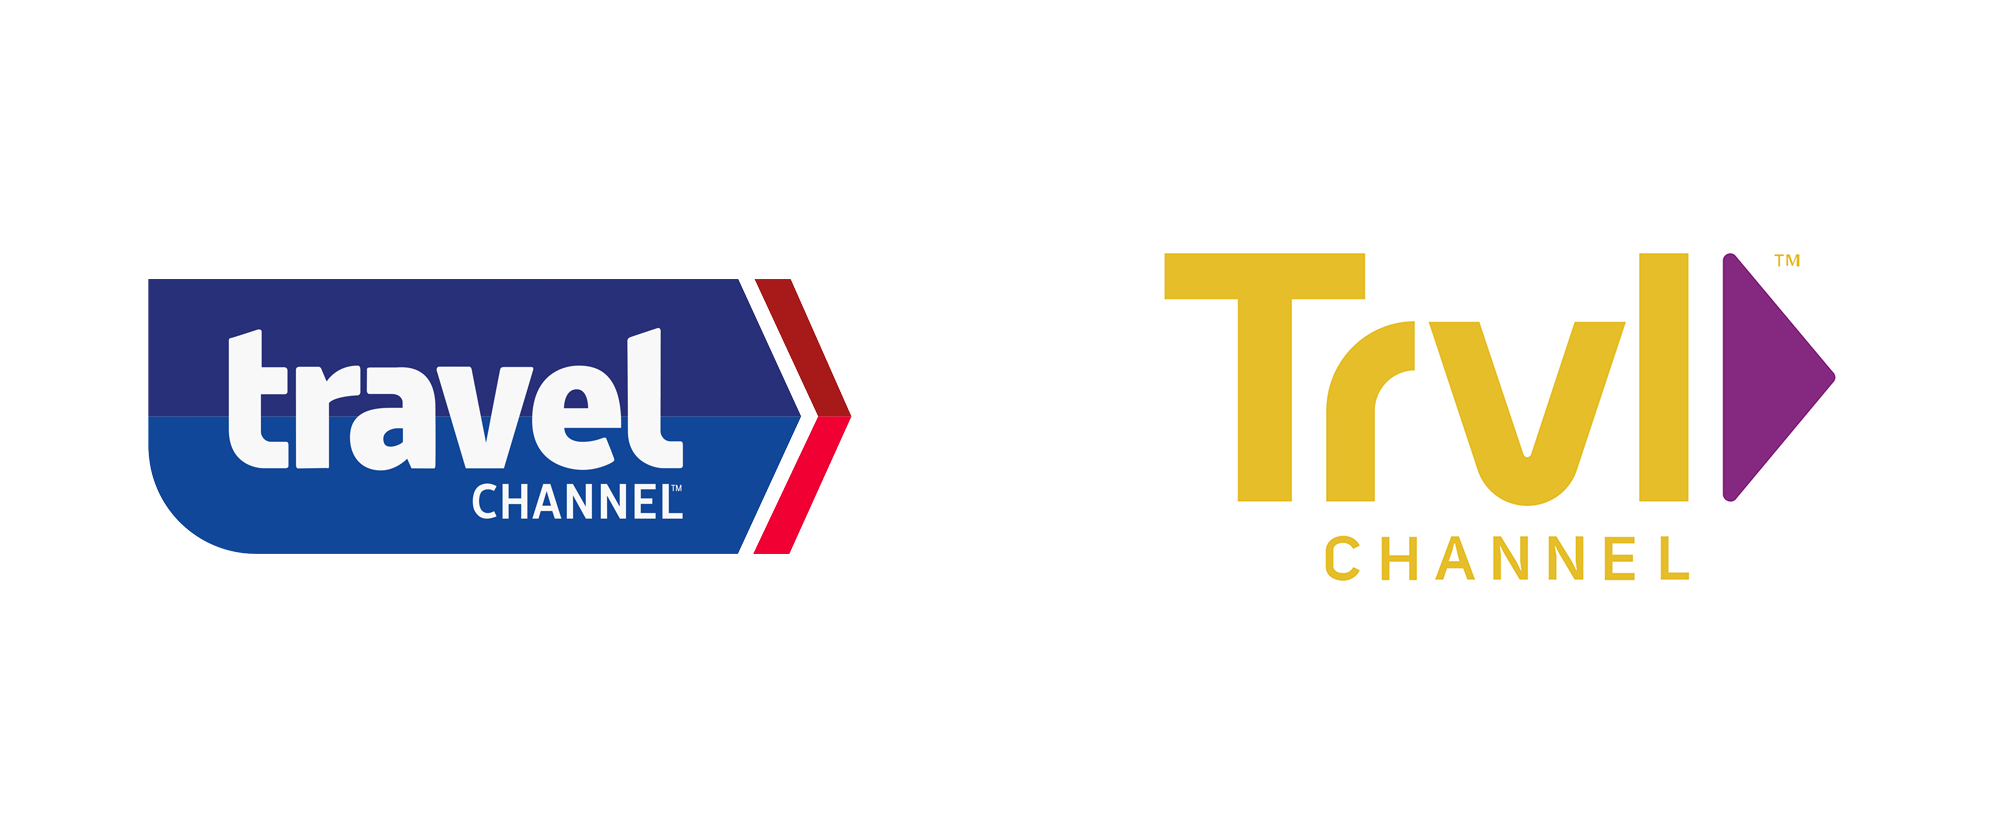 travel_channel_2018_logo_before_after.pn